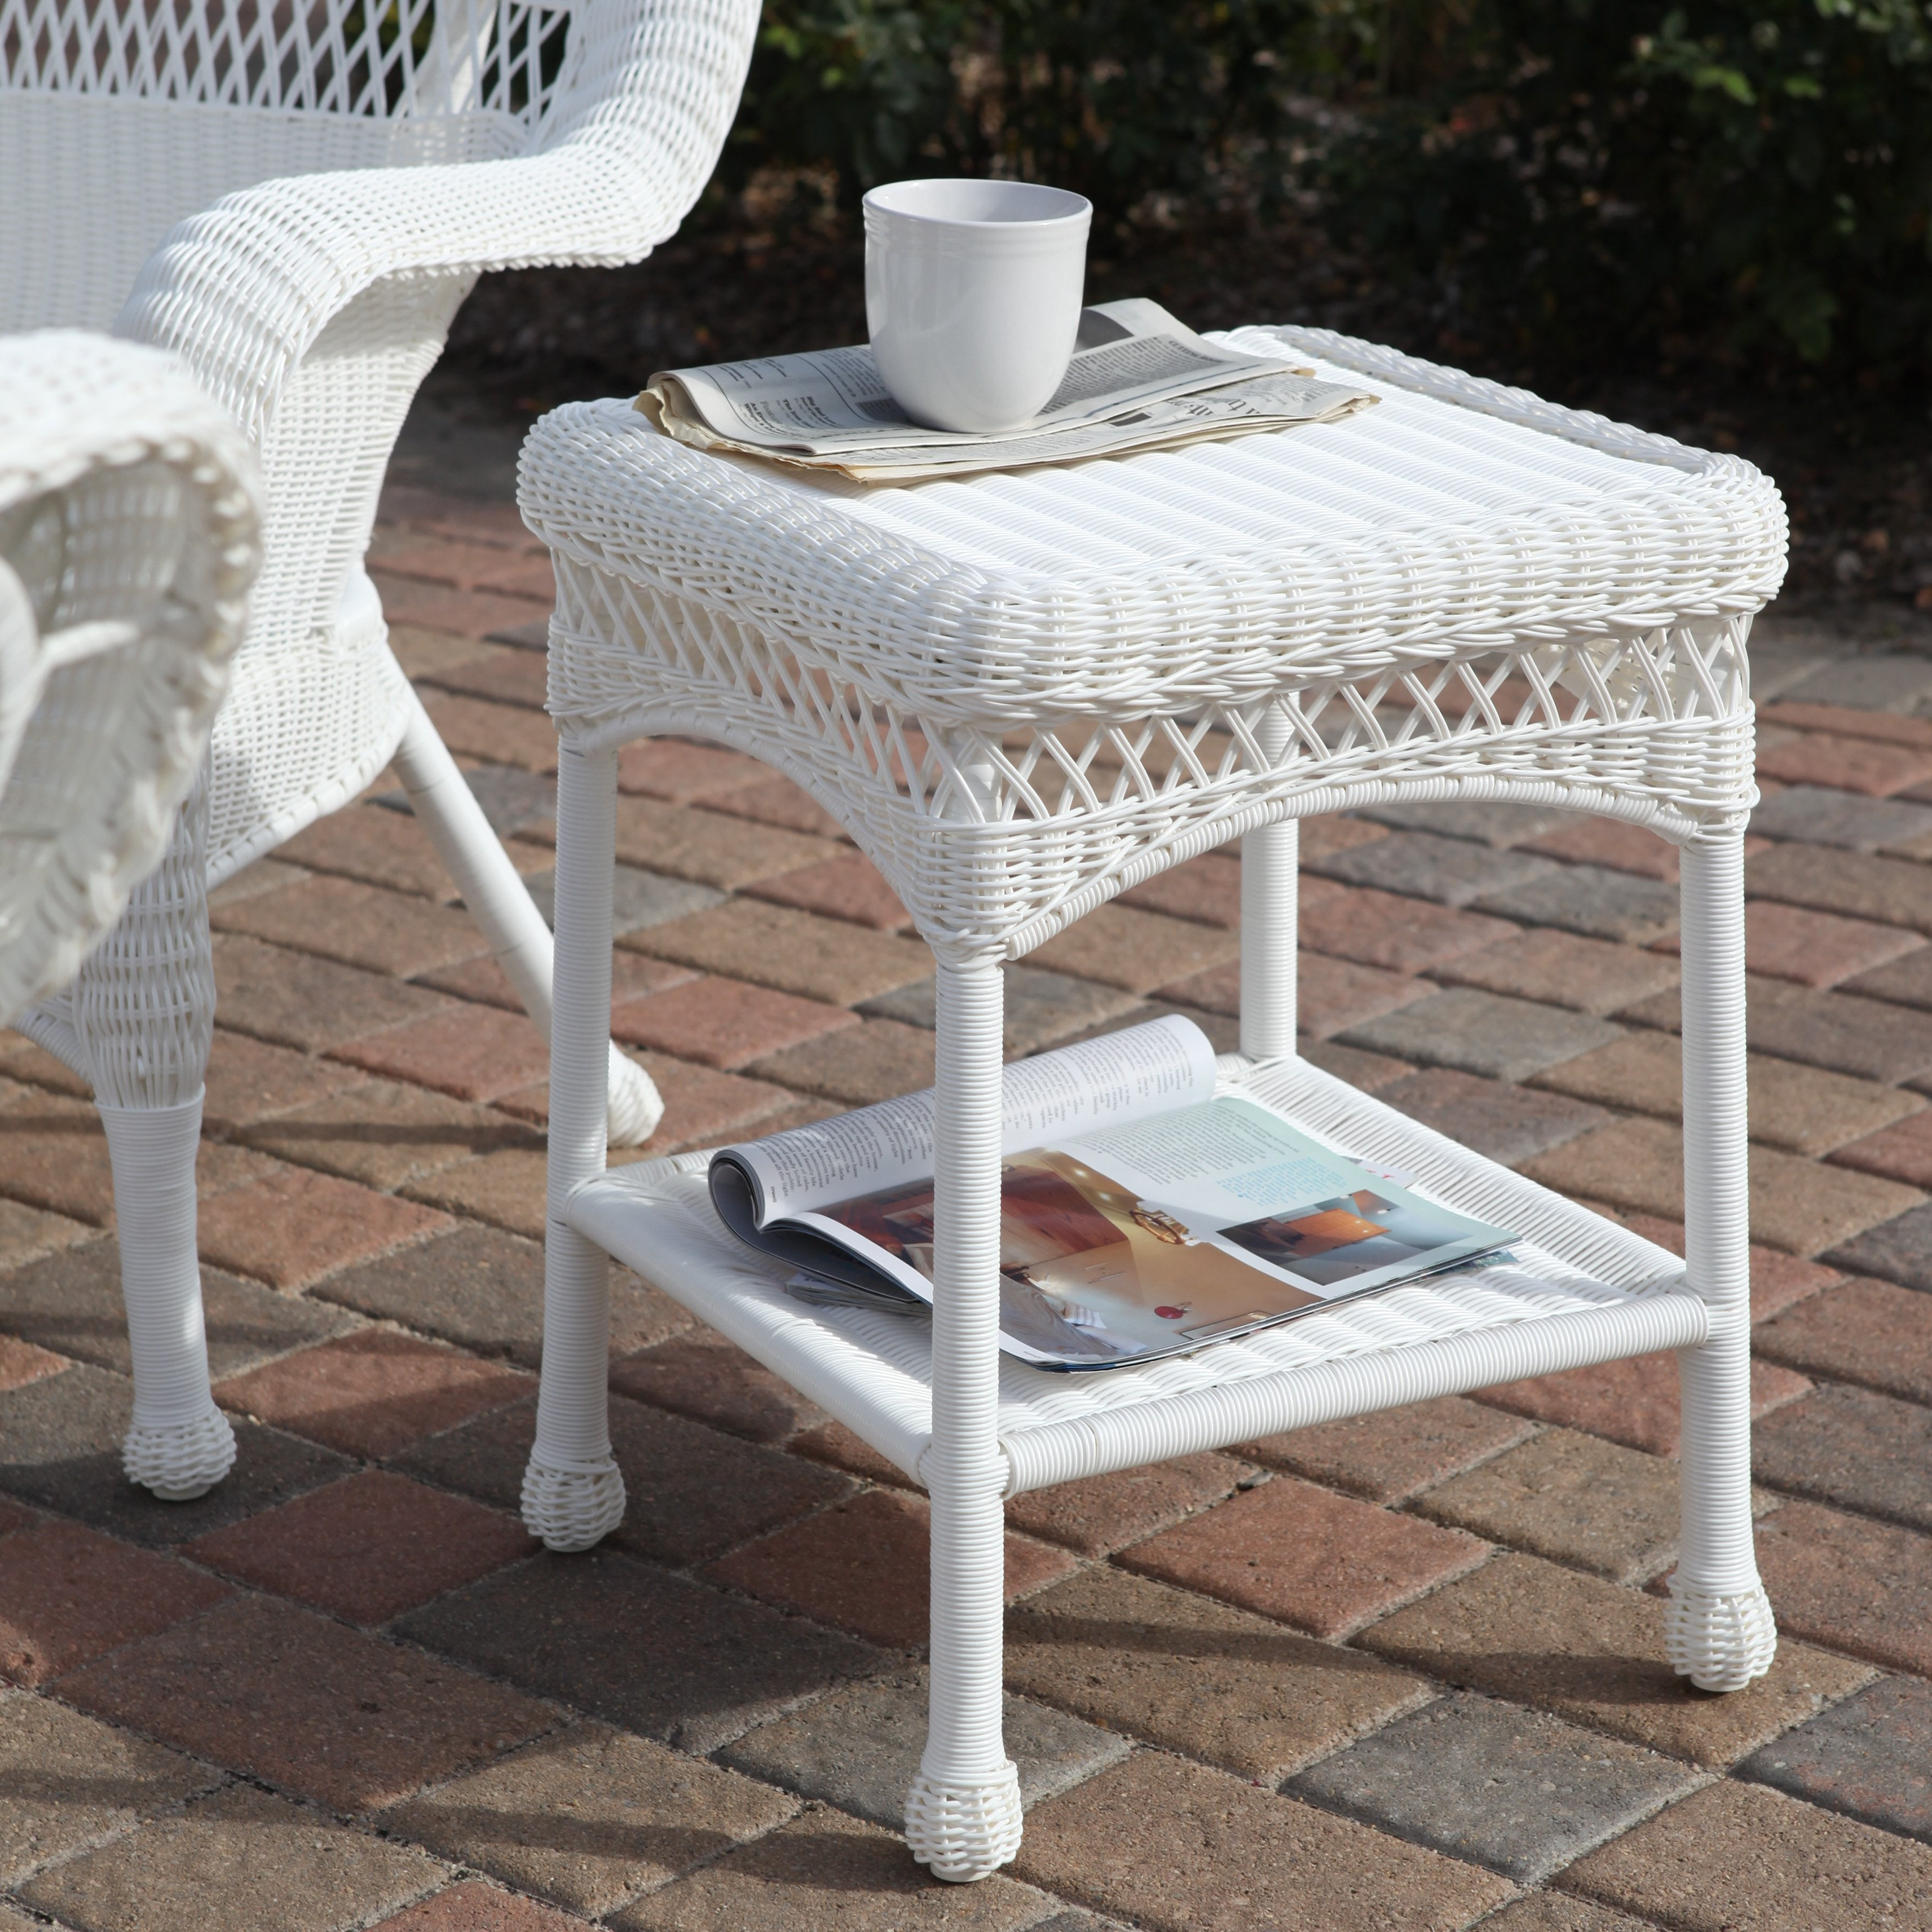 sahara all weather outdoor wicker end table master patio accent tables black metal frame coffee marble living room sitting furniture shoe organizer target chairside with usb